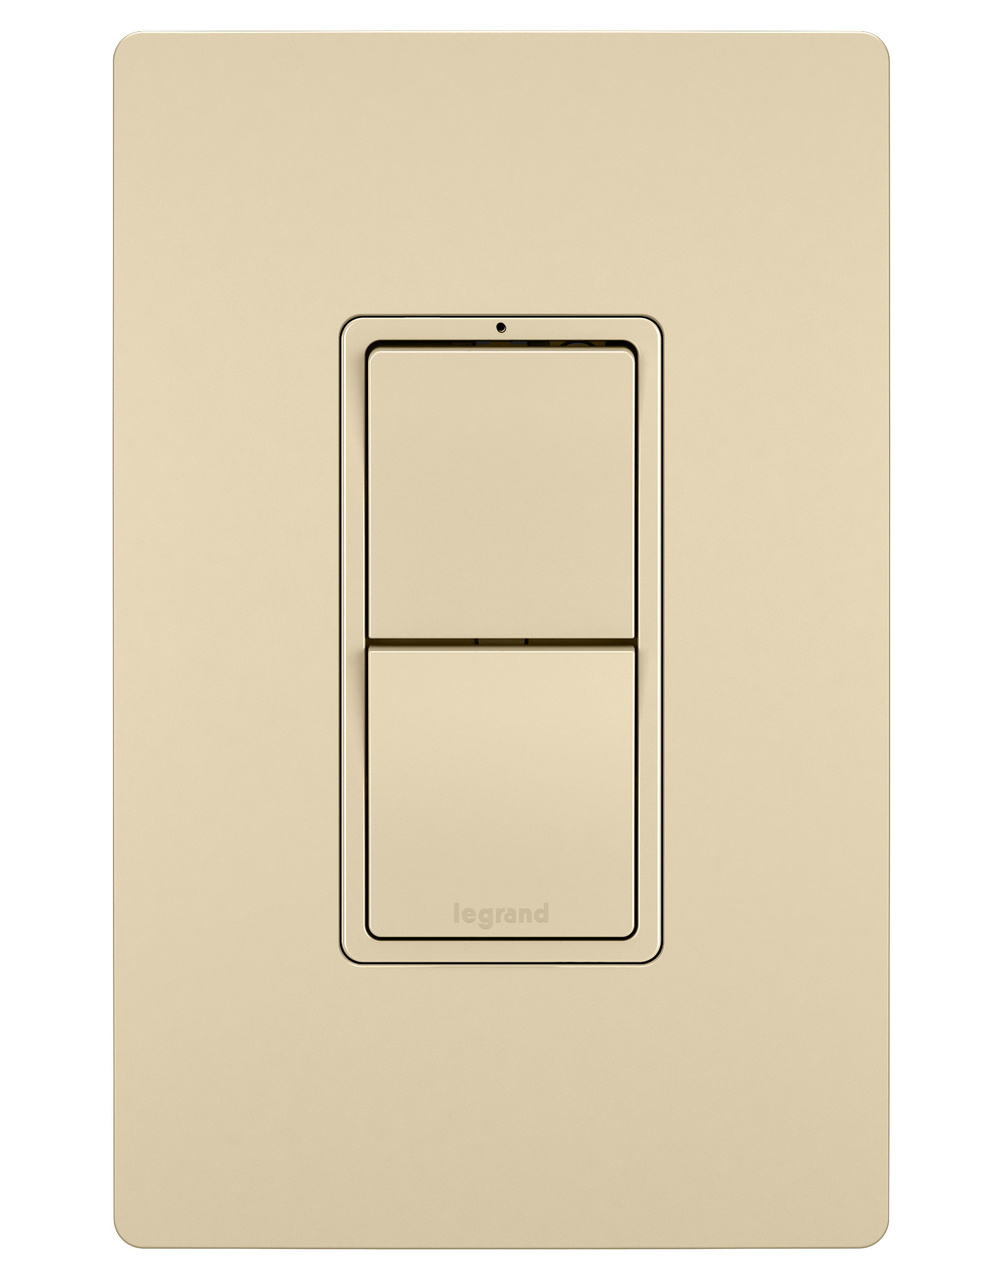 Two Single Pole/3-Way Switches, Ivory